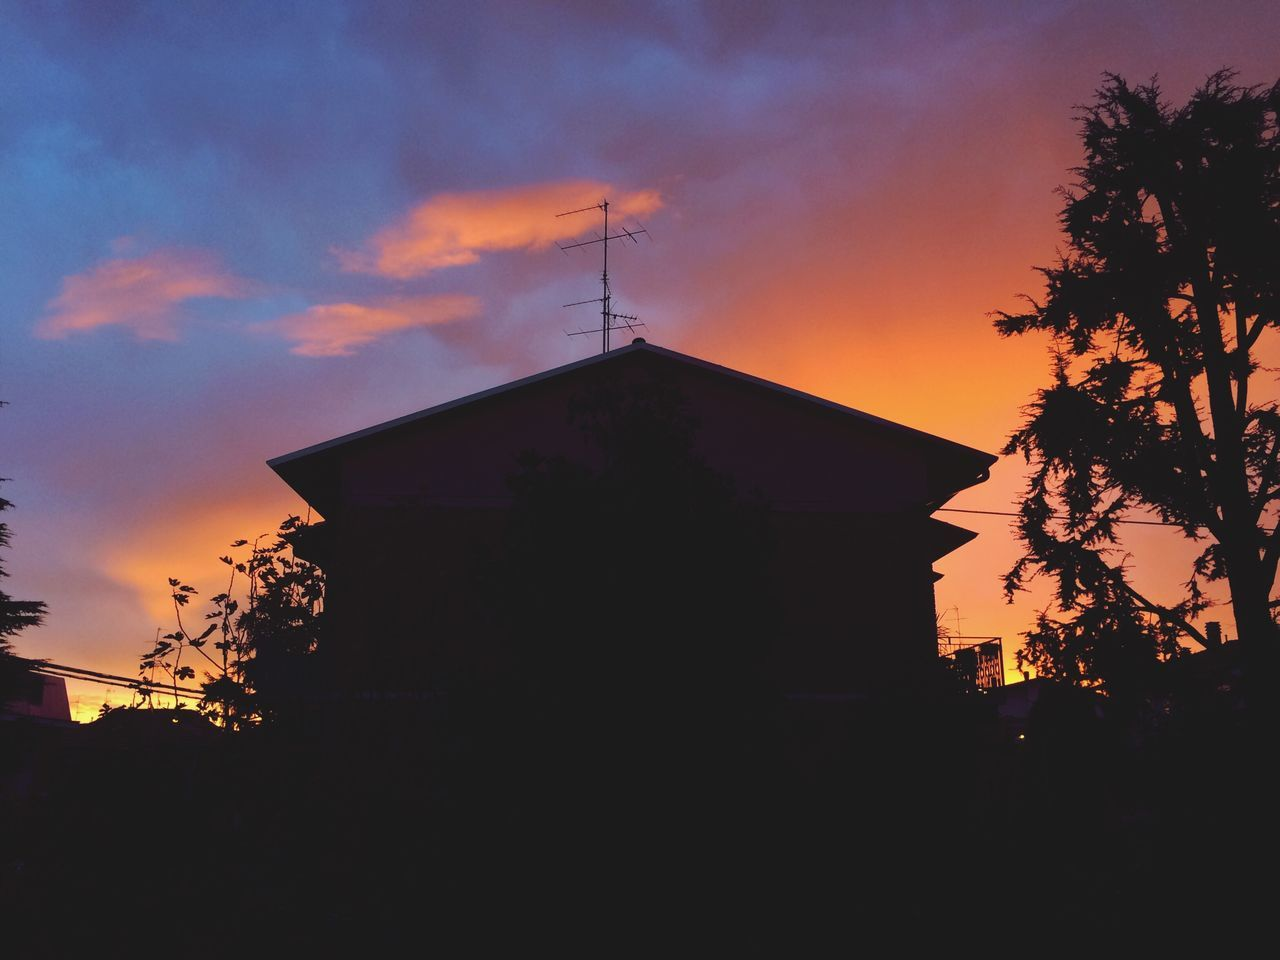 silhouette, sunset, sky, built structure, architecture, low angle view, no people, tree, cloud - sky, outdoors, nature, building exterior, beauty in nature, day